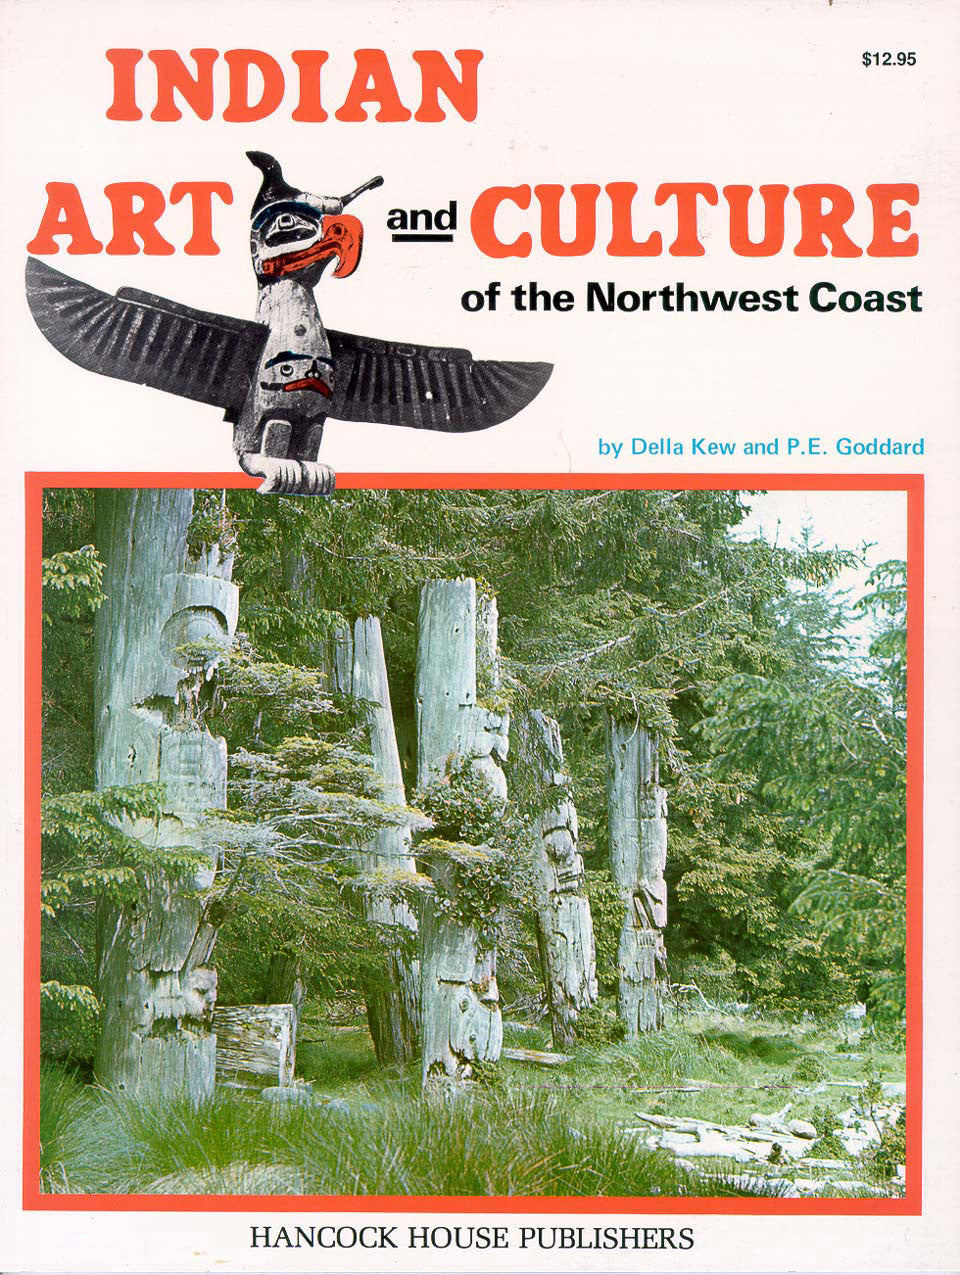 Indian Art & Culture of the Northwest Coast